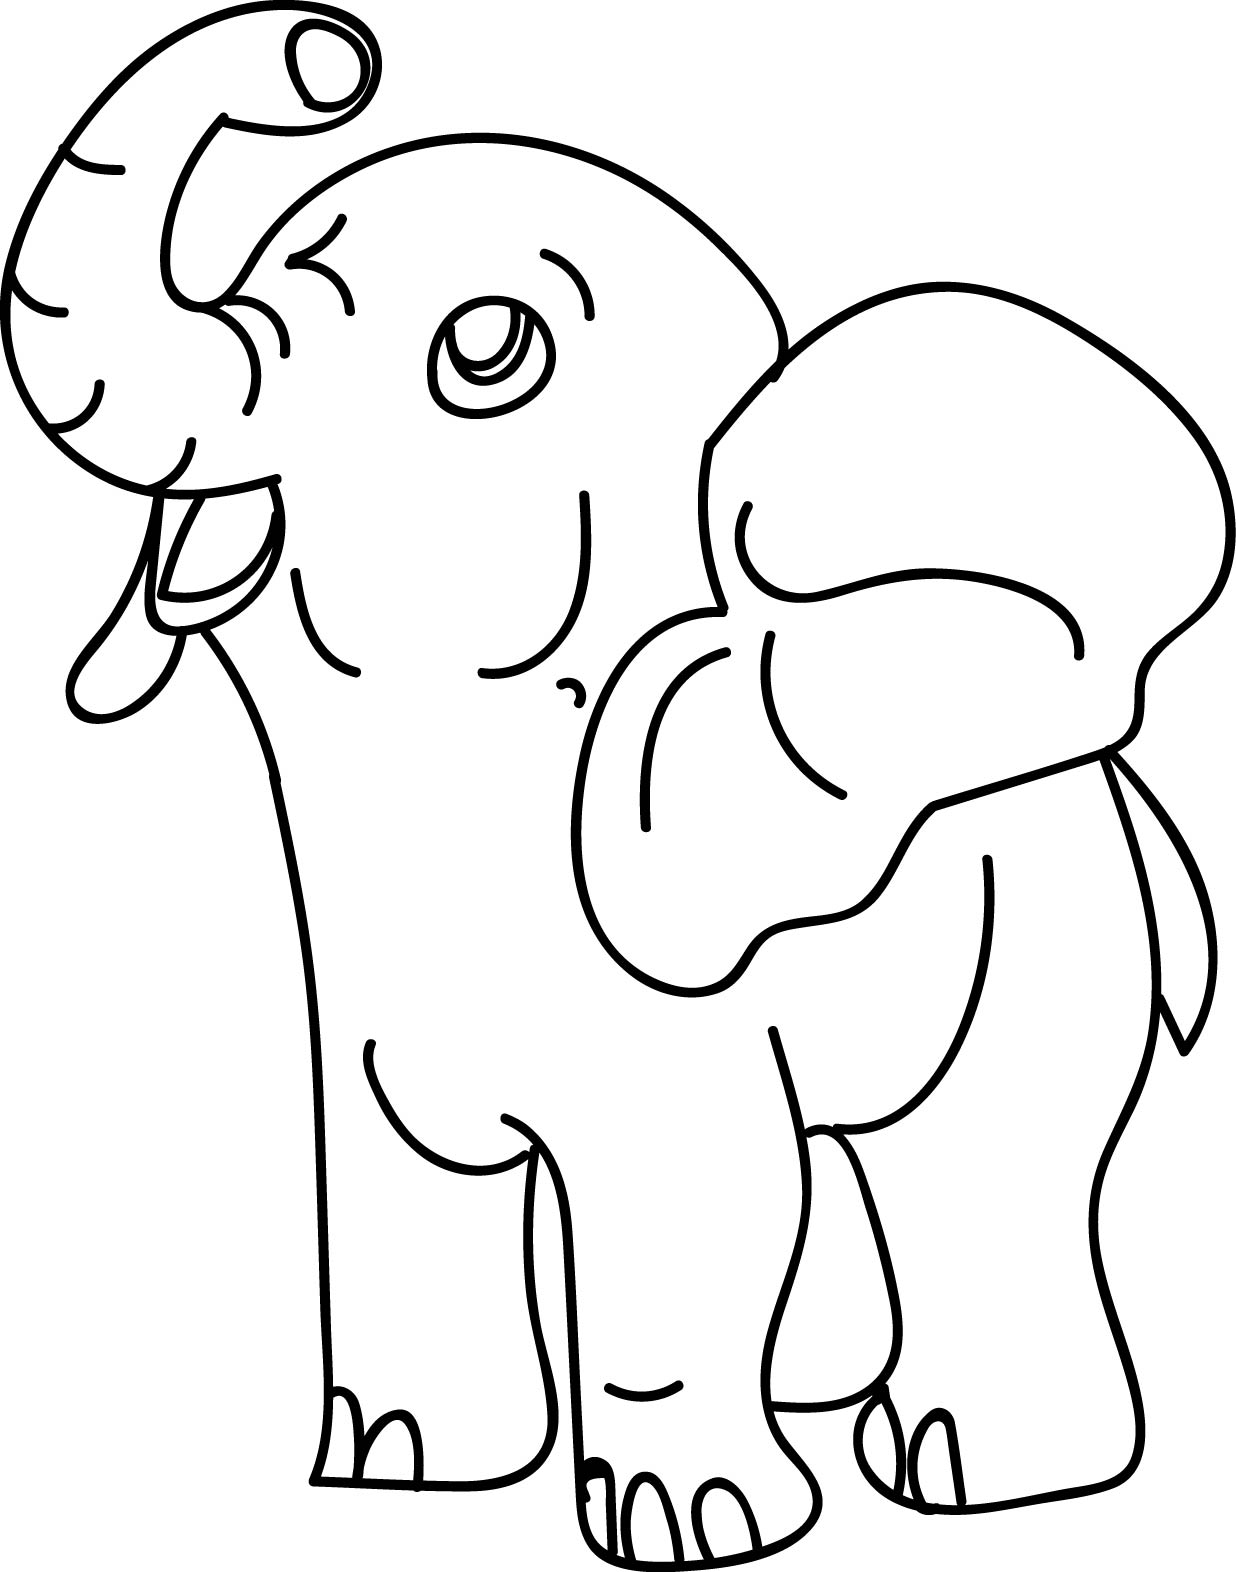 Cartoon Elephant Hose Coloring Page